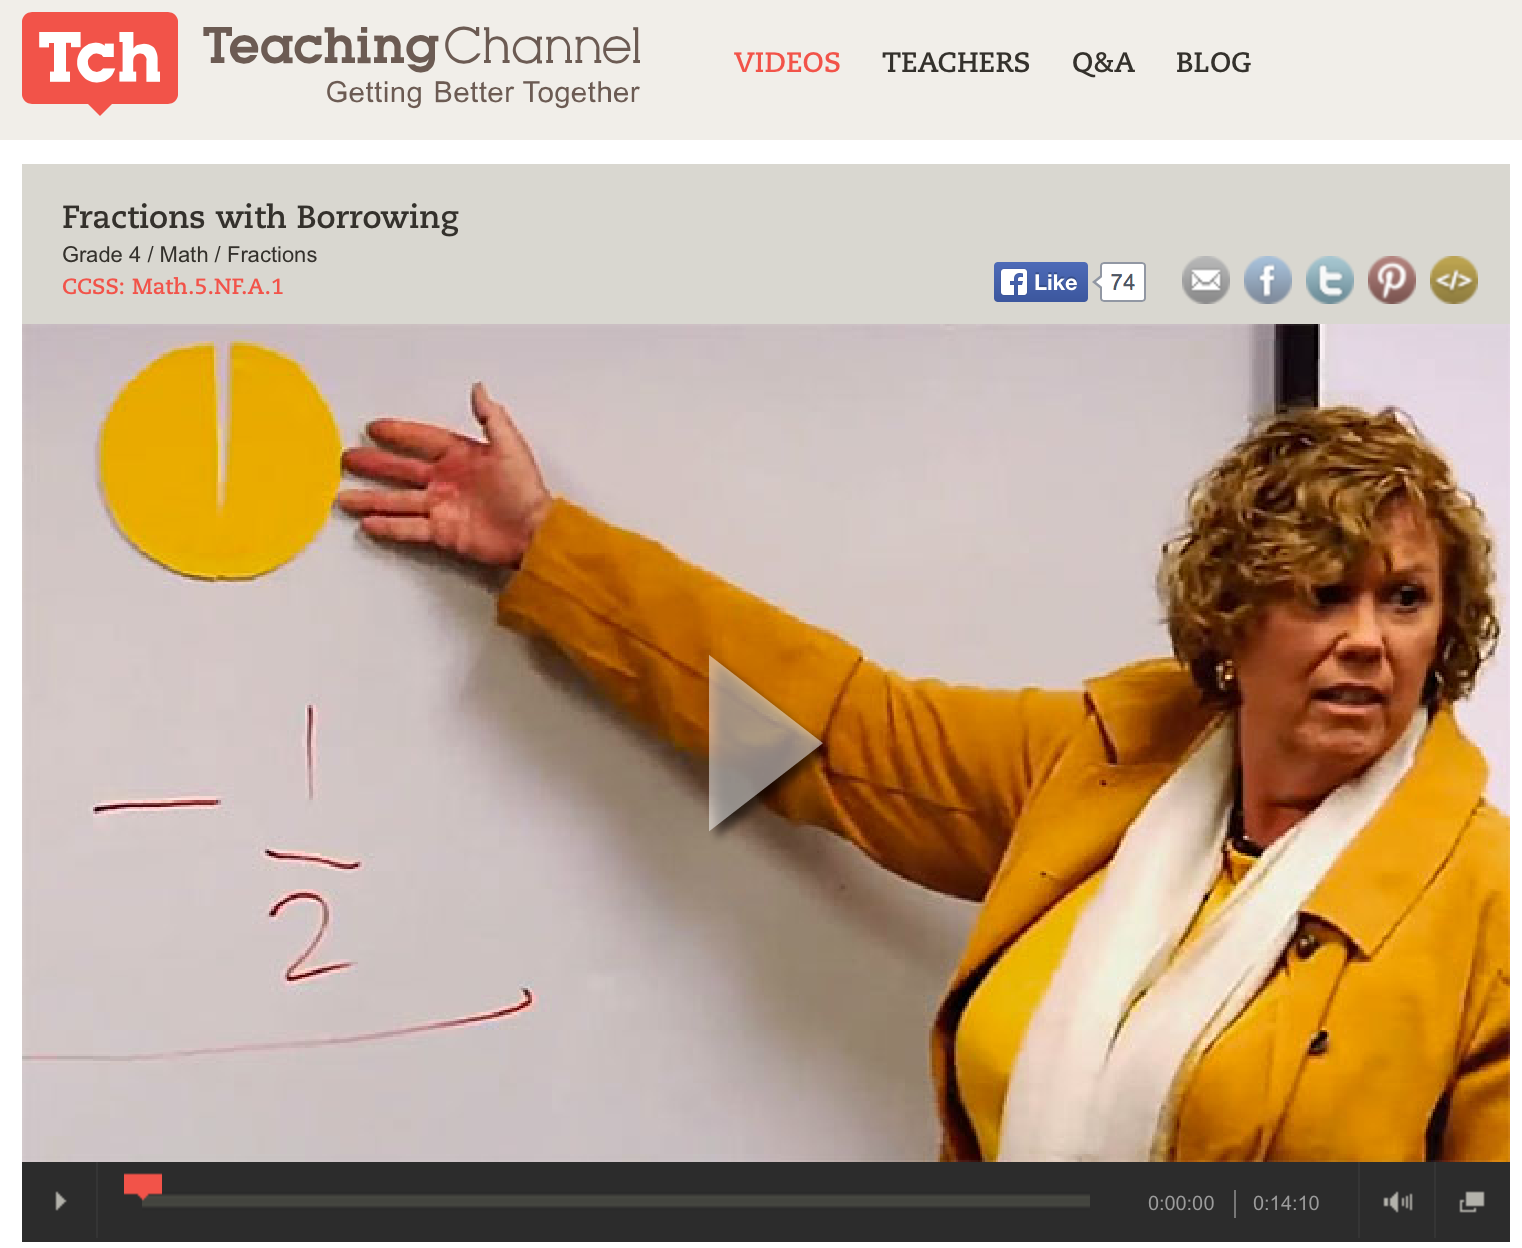 Video From The Teaching Channel Showing How To Borrow When